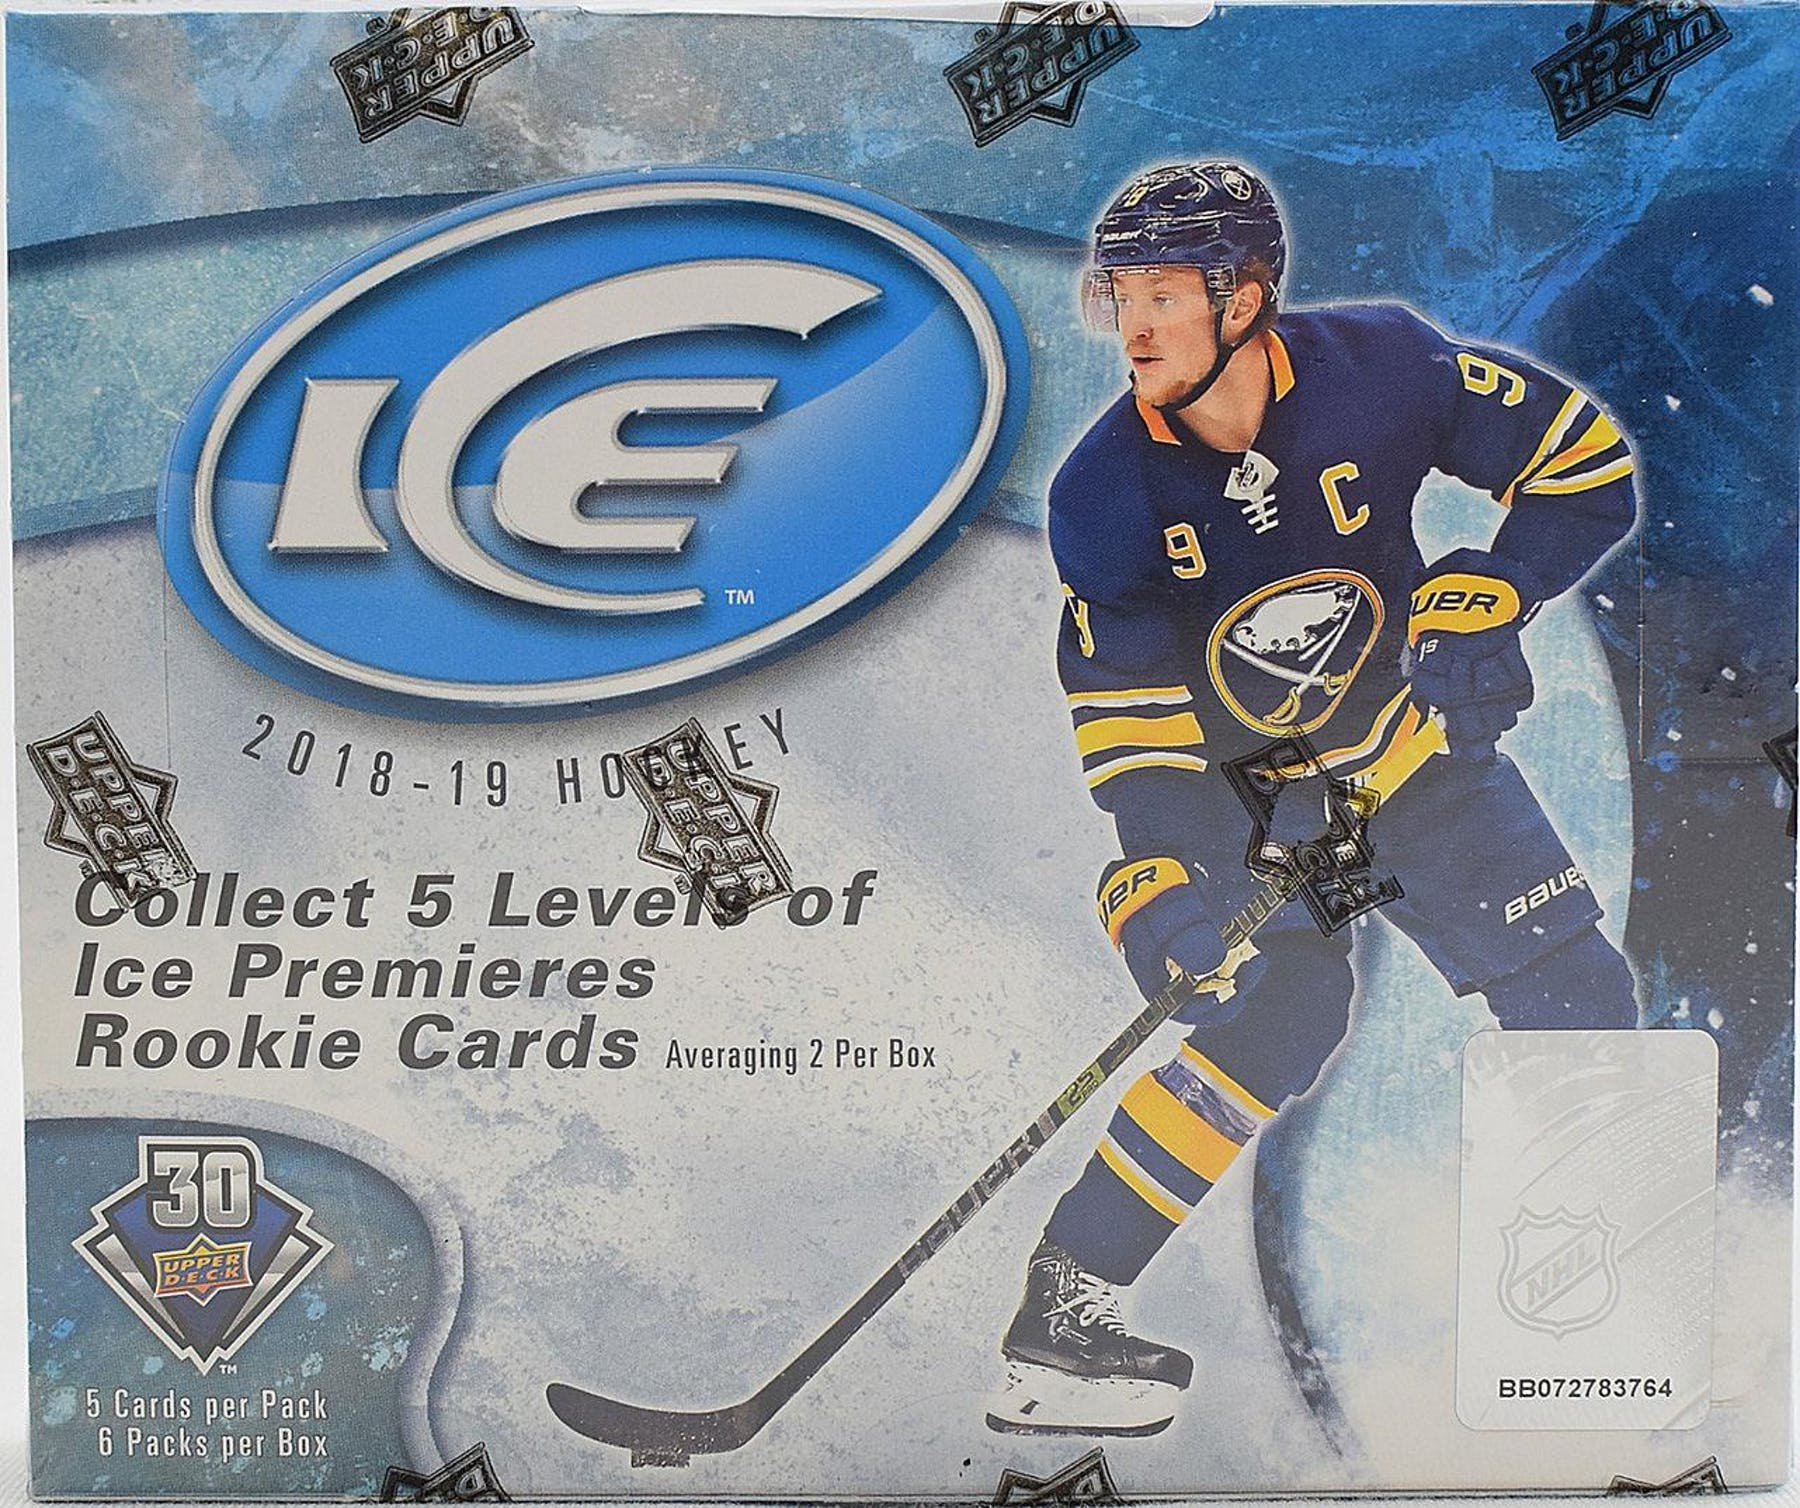 2018-19 Upper Deck Ice Hockey Hobby Box | Eastridge Sports Cards